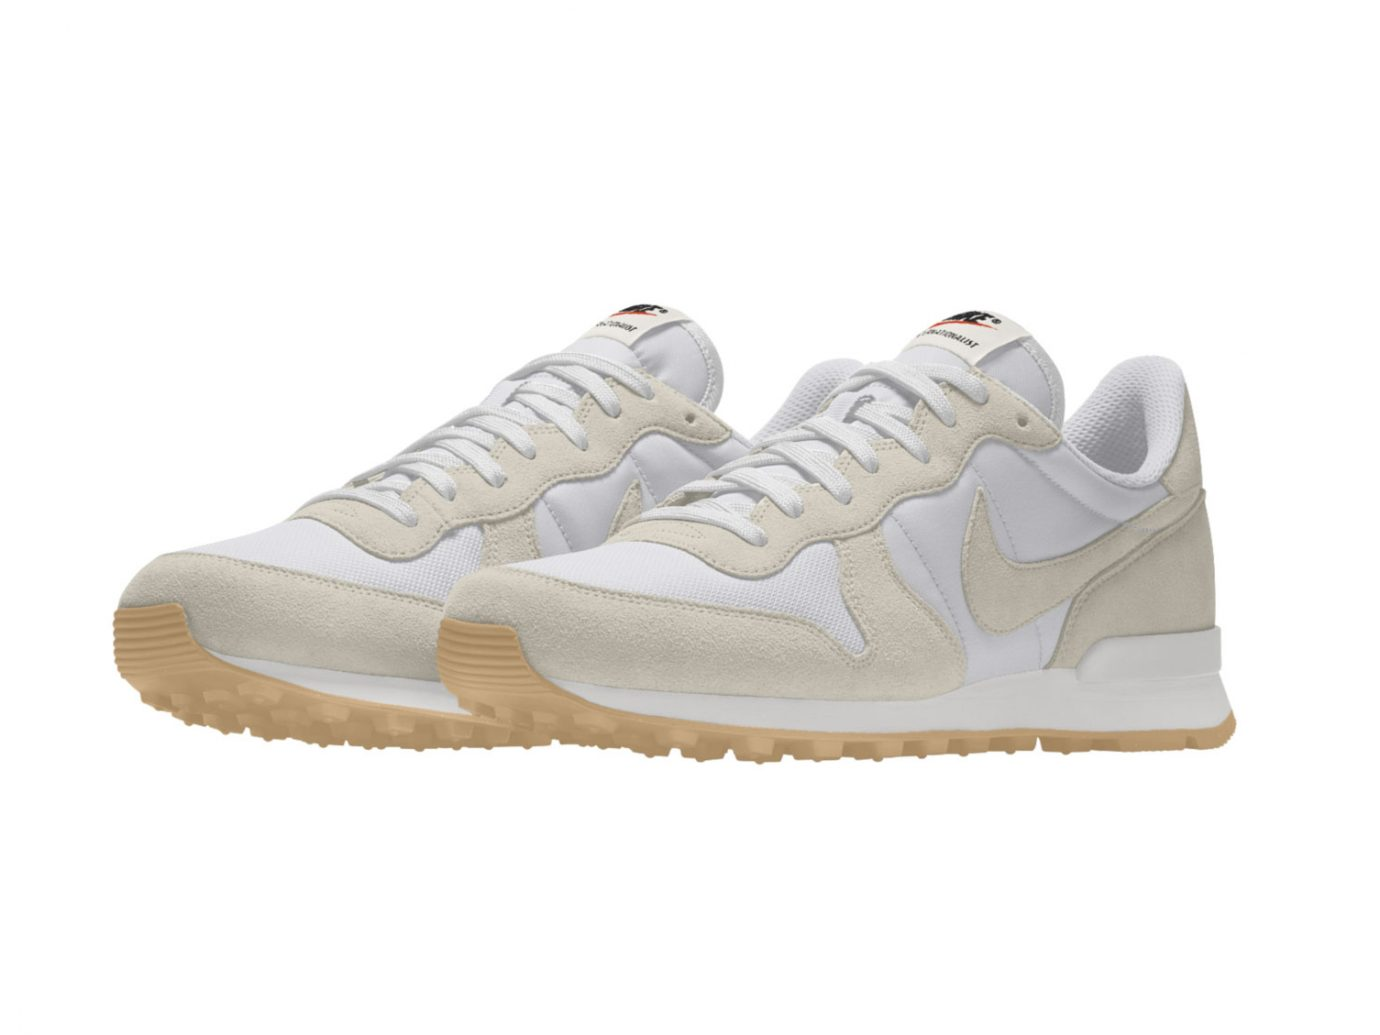 Nike Internationalist Low Sneaker